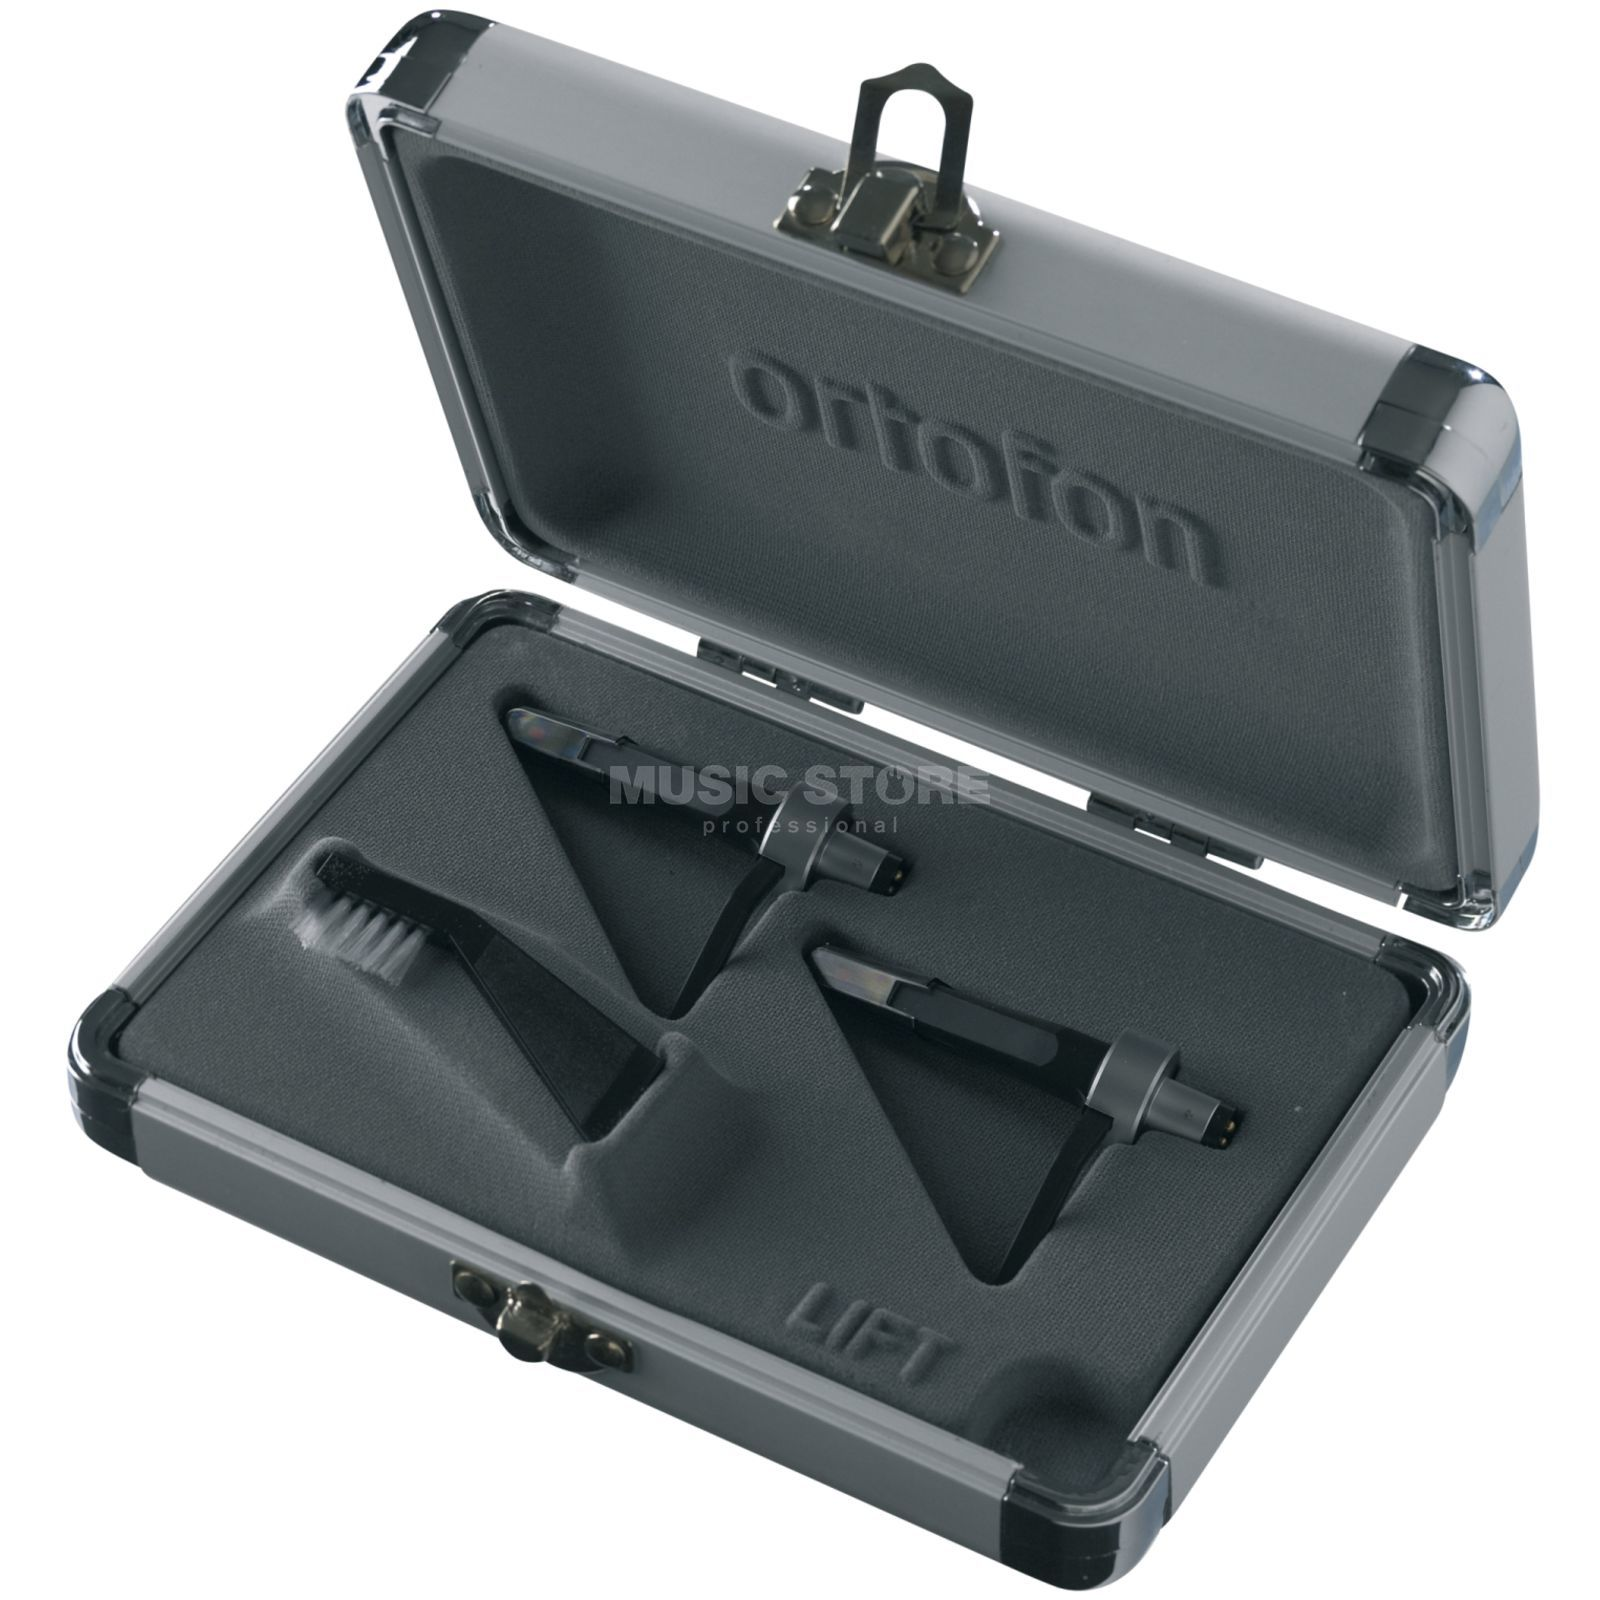 Ortofon Concorde Pro S Twin Pack Cartridge & Stylus Product Image